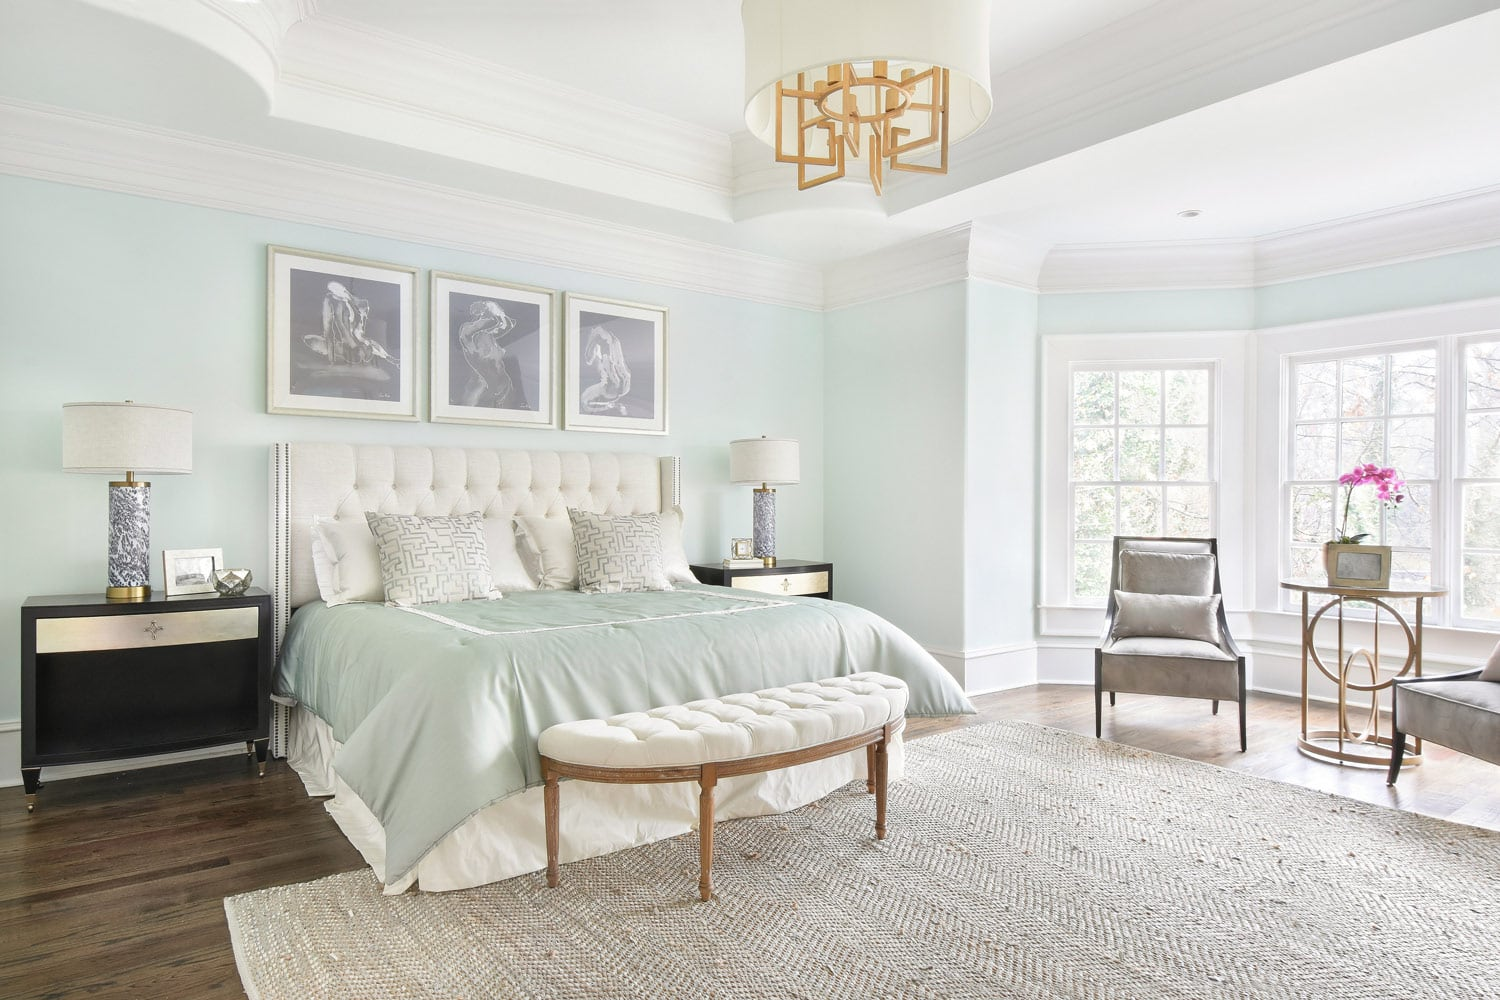 Peachtree Dunwoody master suite interior decor in Atlanta